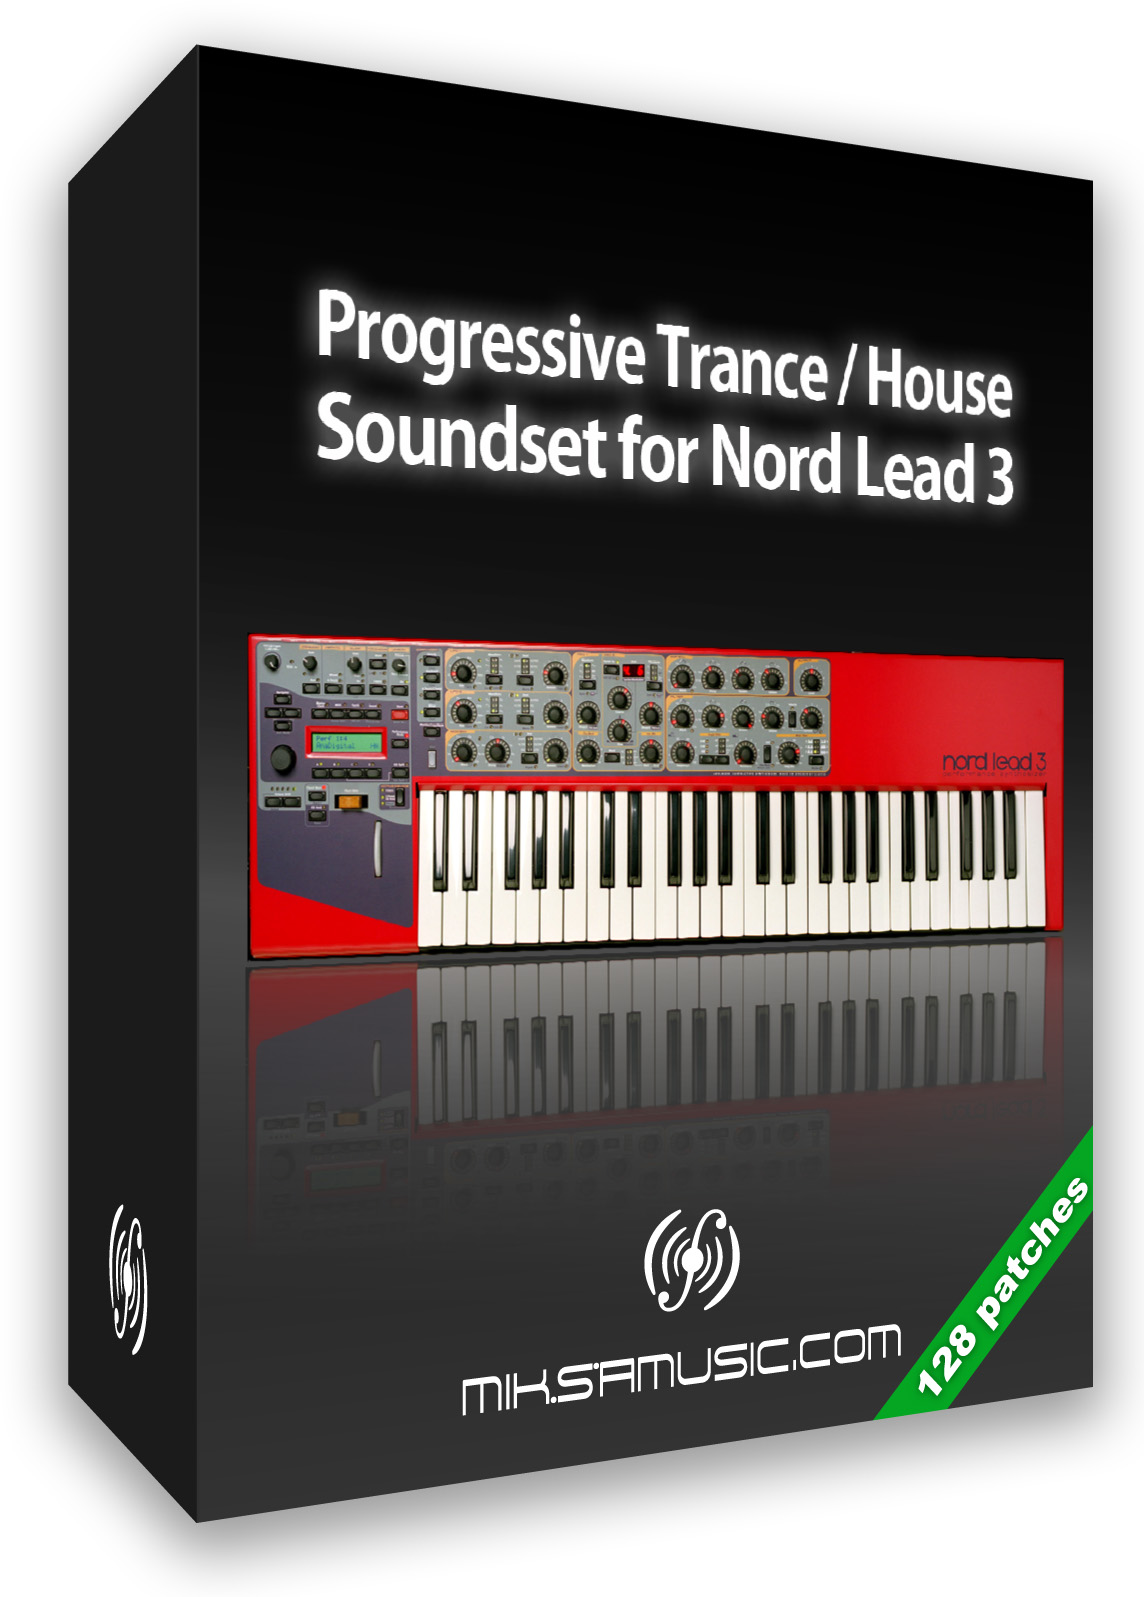 Progressive Trance / House Presets for Nord Lead 3 (128 patches)